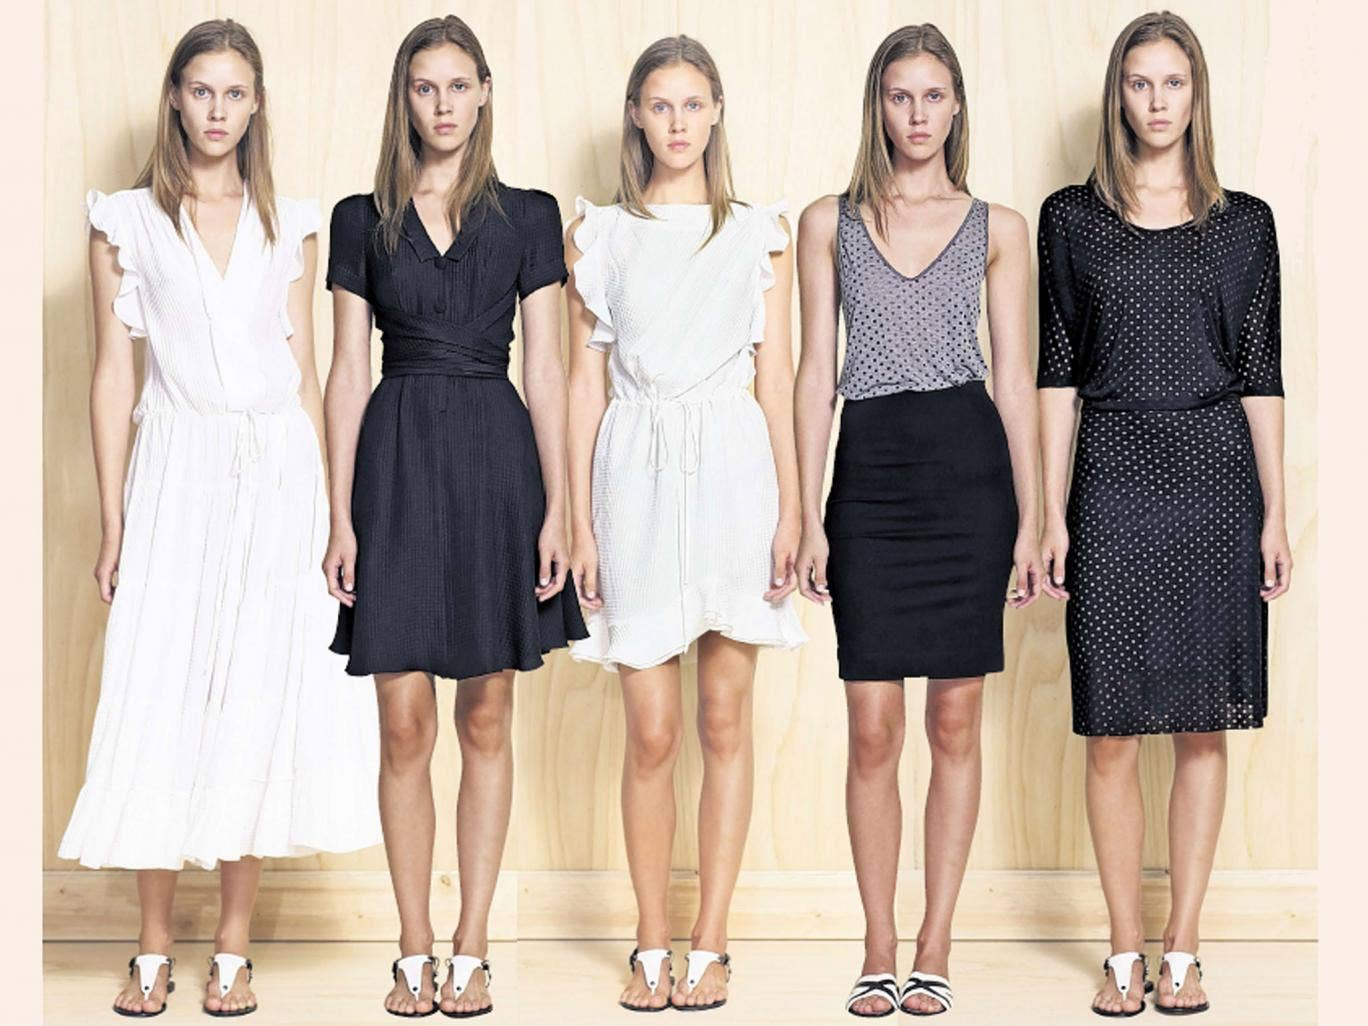 Valley girls: all clothing LA't, prices start from £70, available from Harvey Nichols, 109 - 125 Knightsbridge SW1, 020 7235 5000, harveynichols.com; and Harrods, 87-135 Brompton Road, SW1, 020 7730 1234, harrods.com